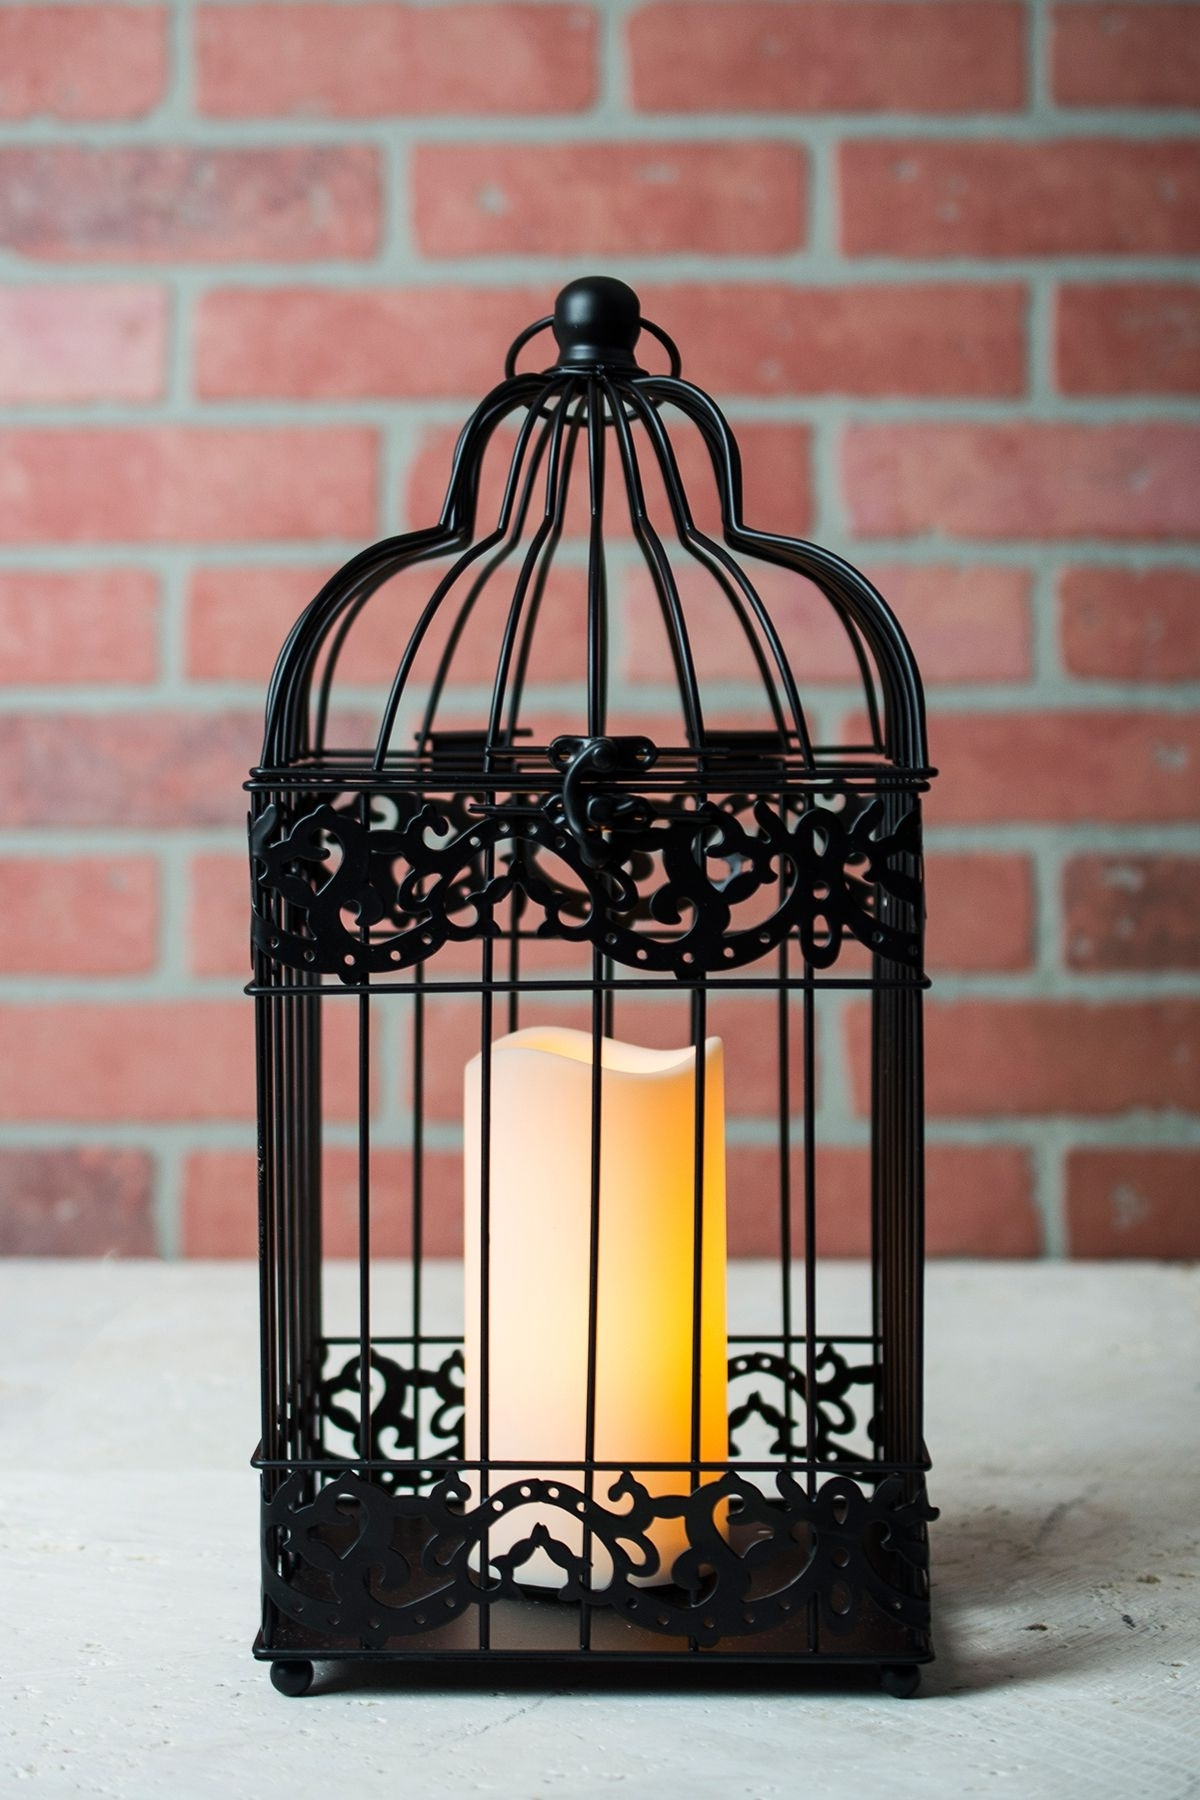 2018 Outdoor Lanterns With Battery Operated Candles Throughout Black Bird Cage Candle Lantern Battery Operated 15In (View 1 of 20)